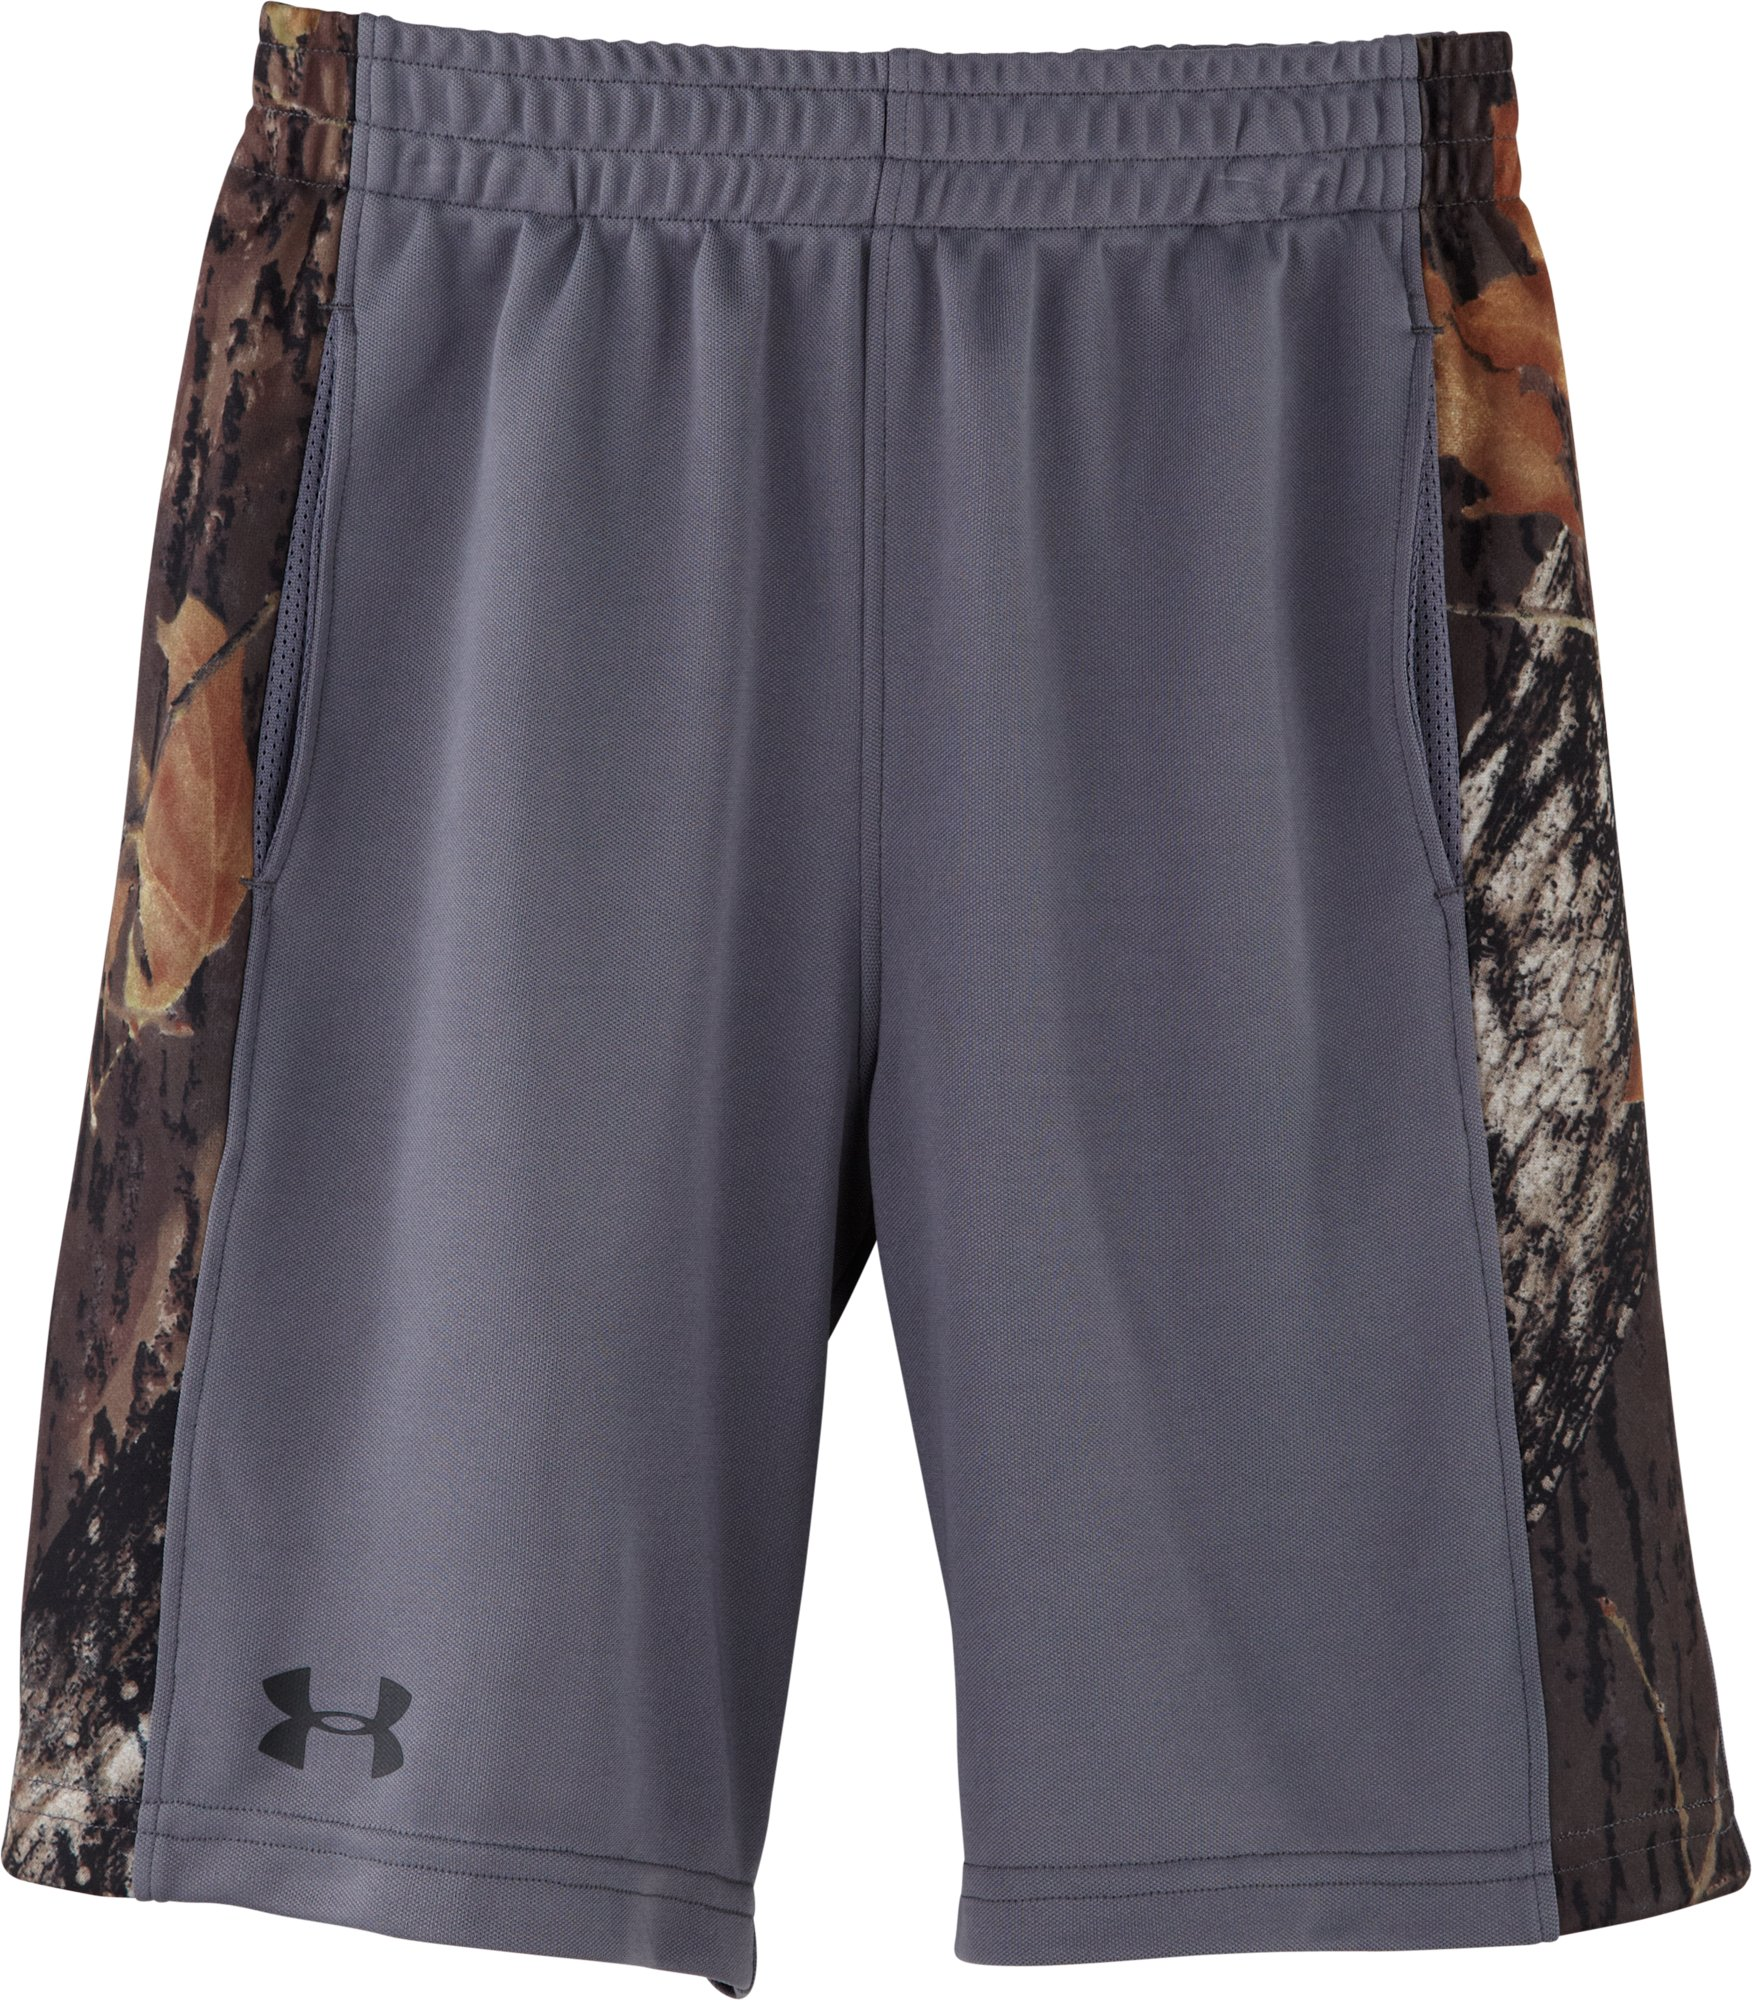 Boys' Toddler UA Ultimate Camo Shorts, Graphite